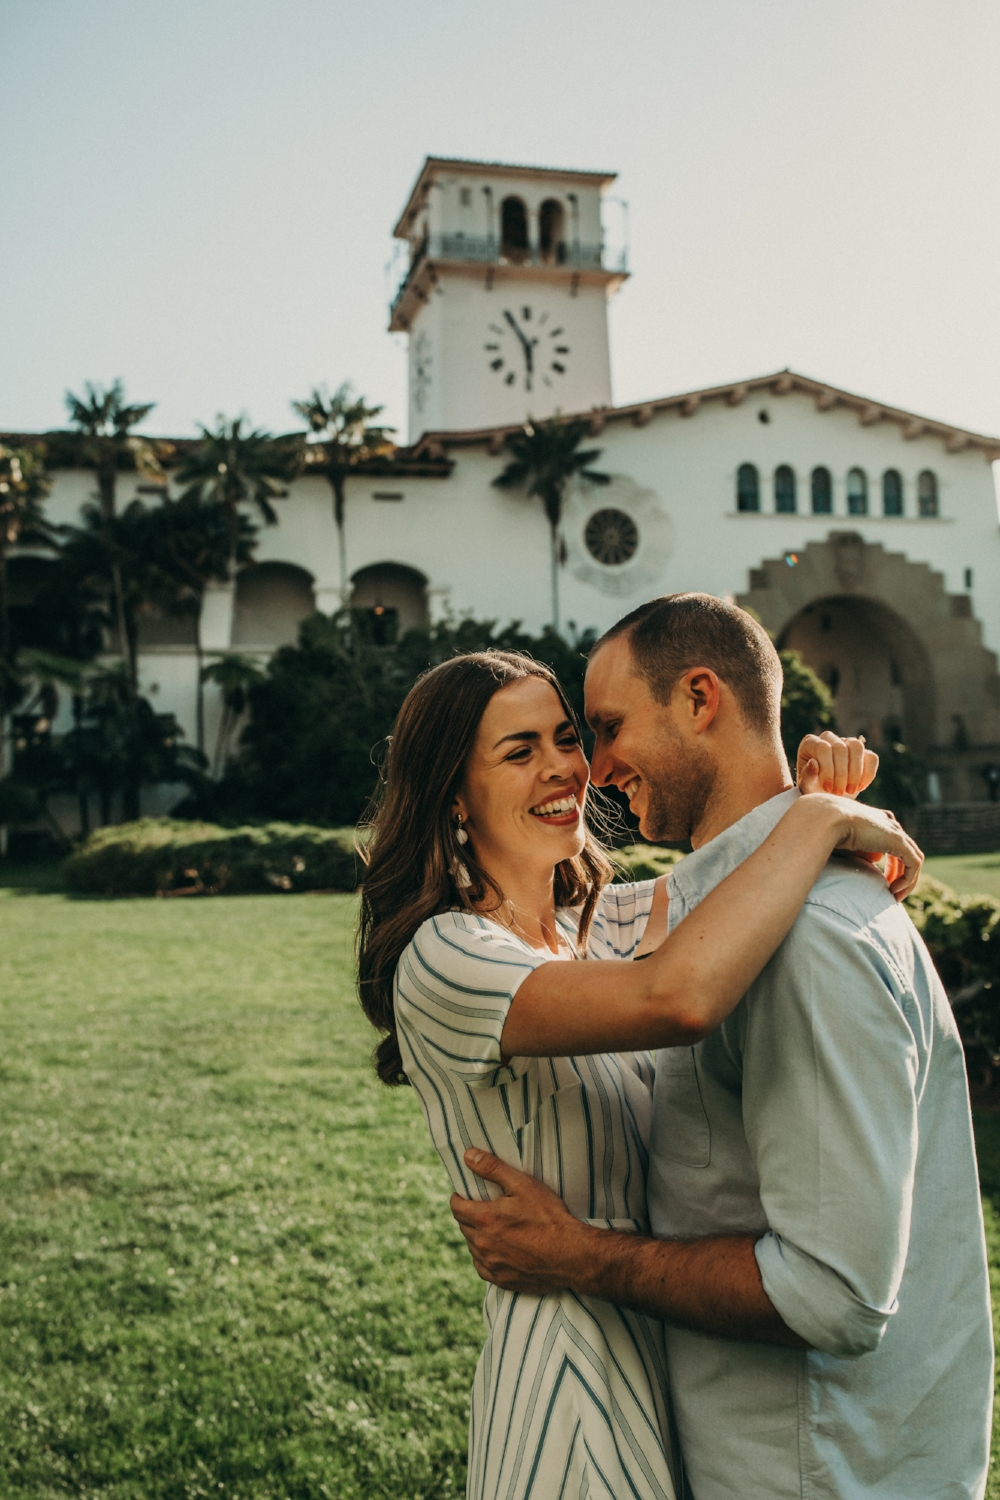 santa-barbara-courthouse-engagement-photos-20180527-079A2199-Edit.jpg